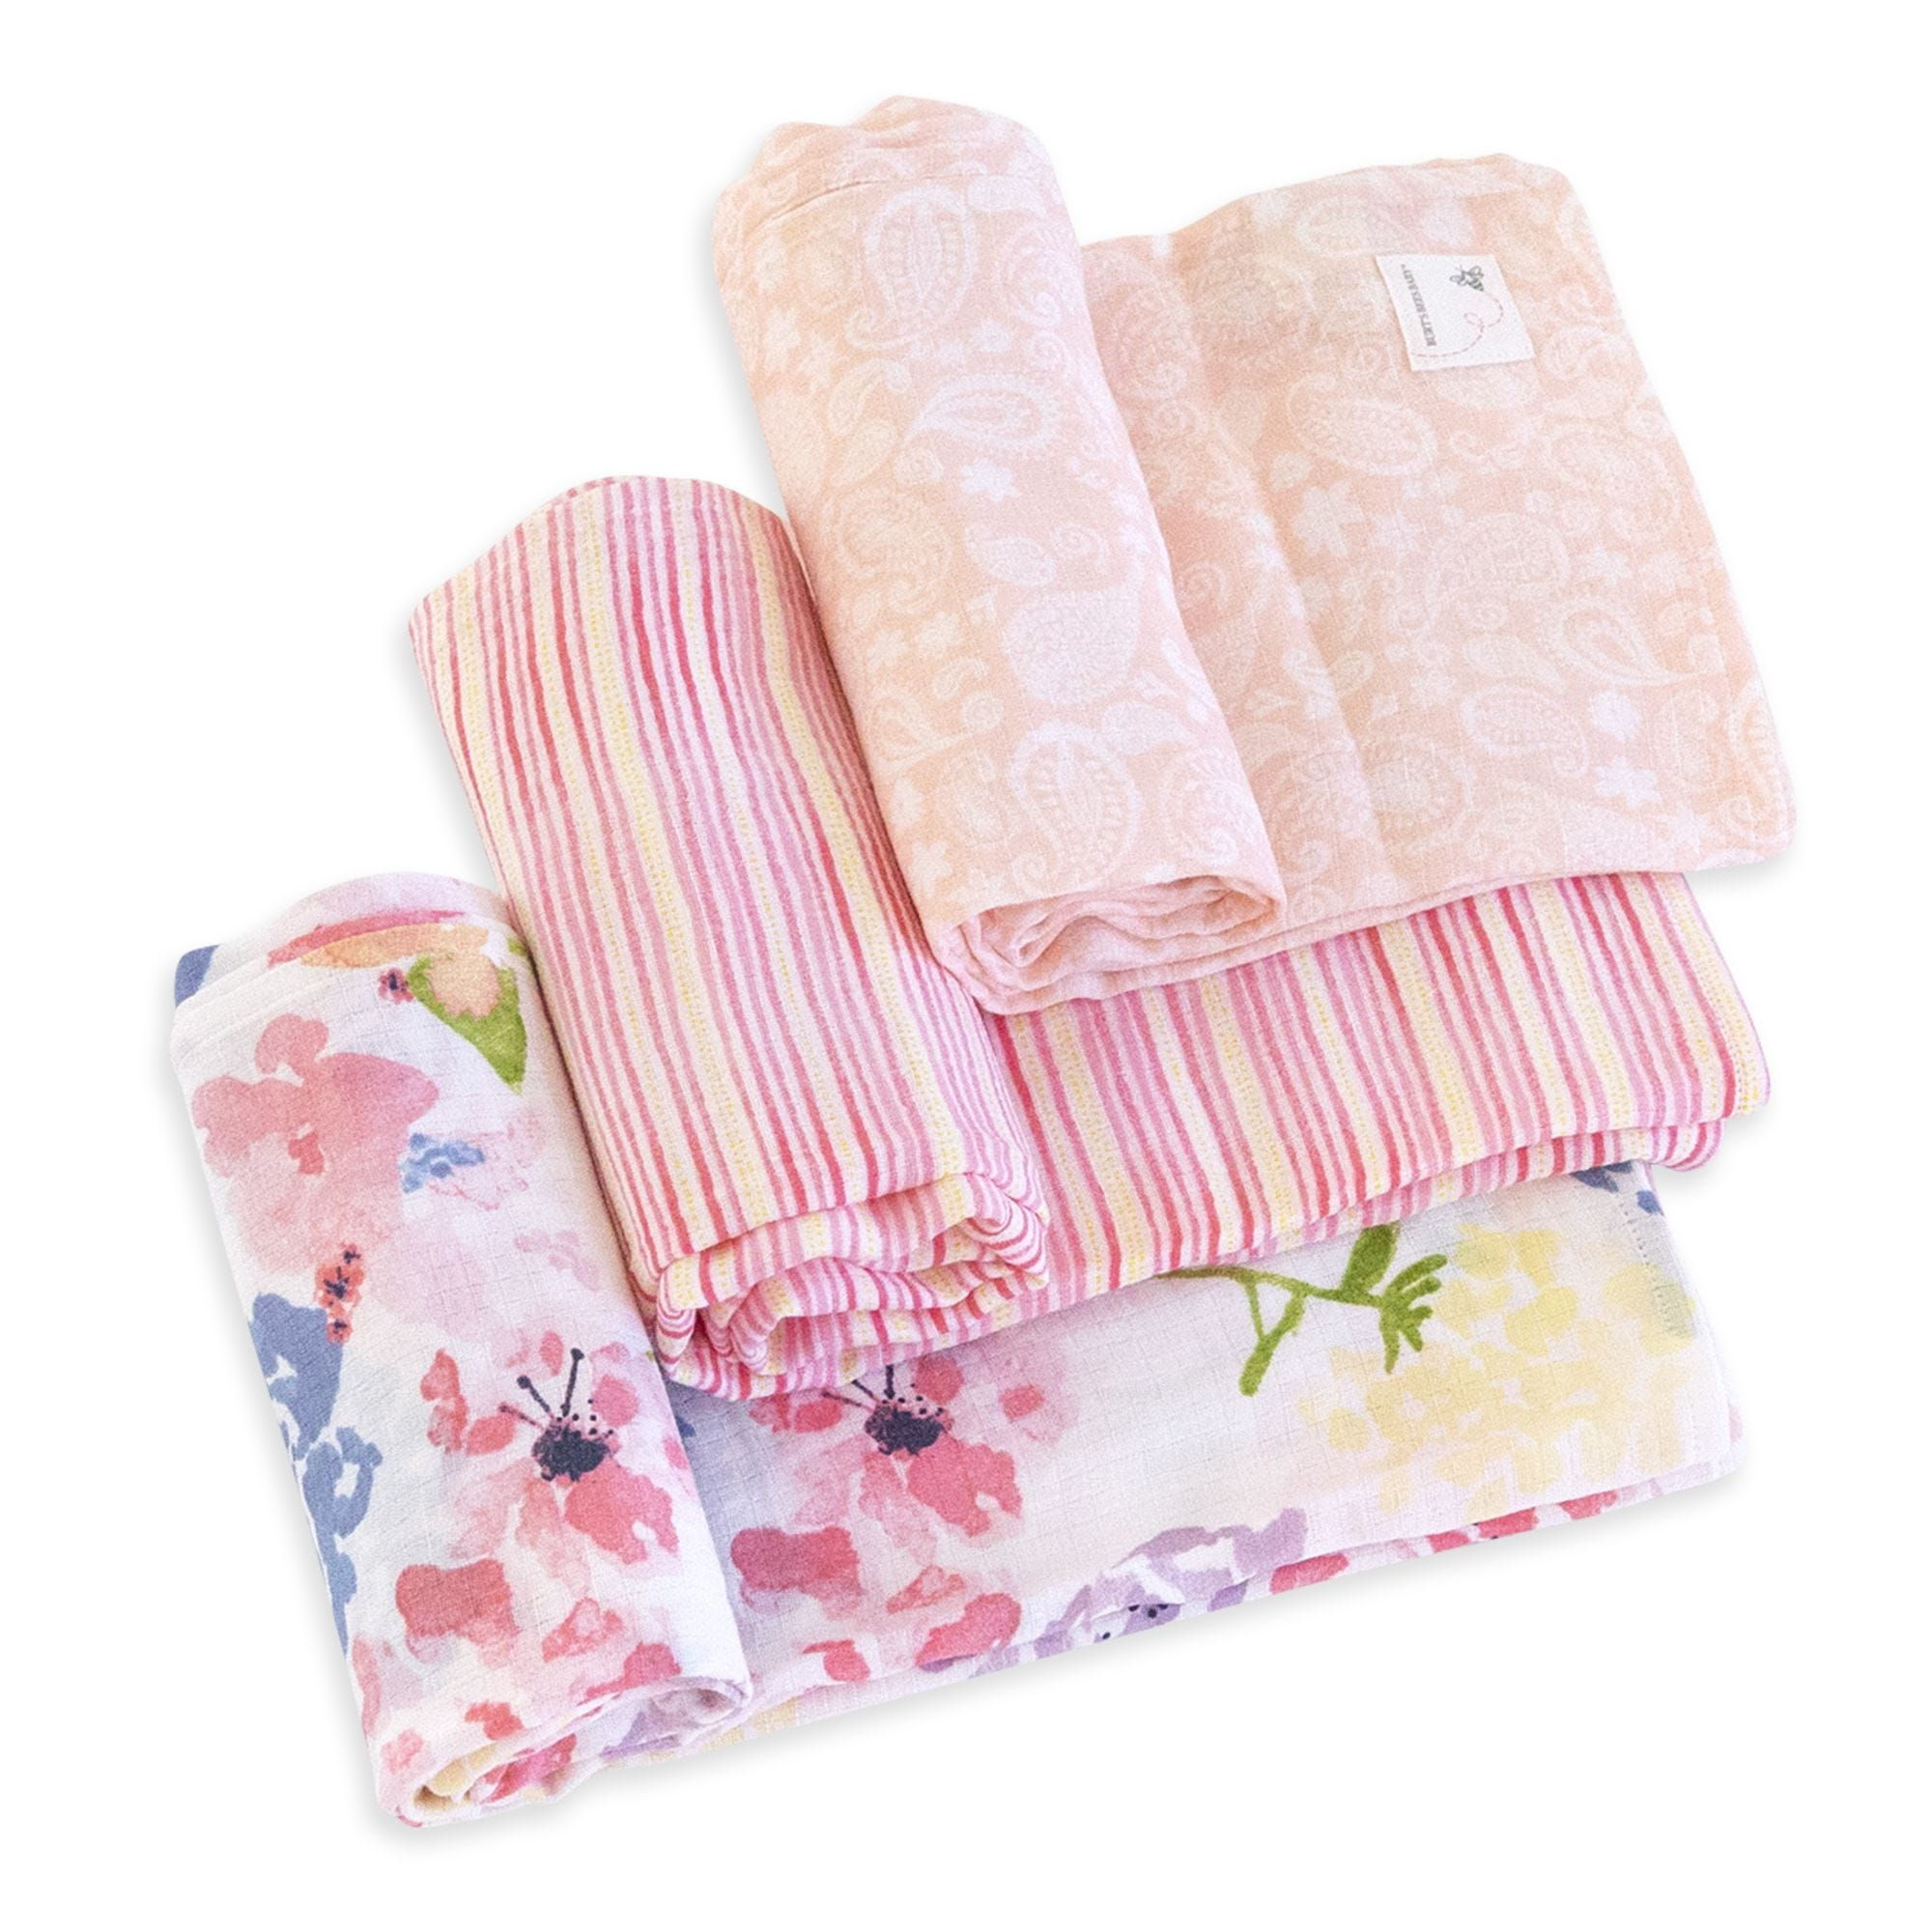 Watercolor Spring Bouquet Organic Cotton Woven Muslin Baby Swaddle Blankets  3 Pack 402890cc6